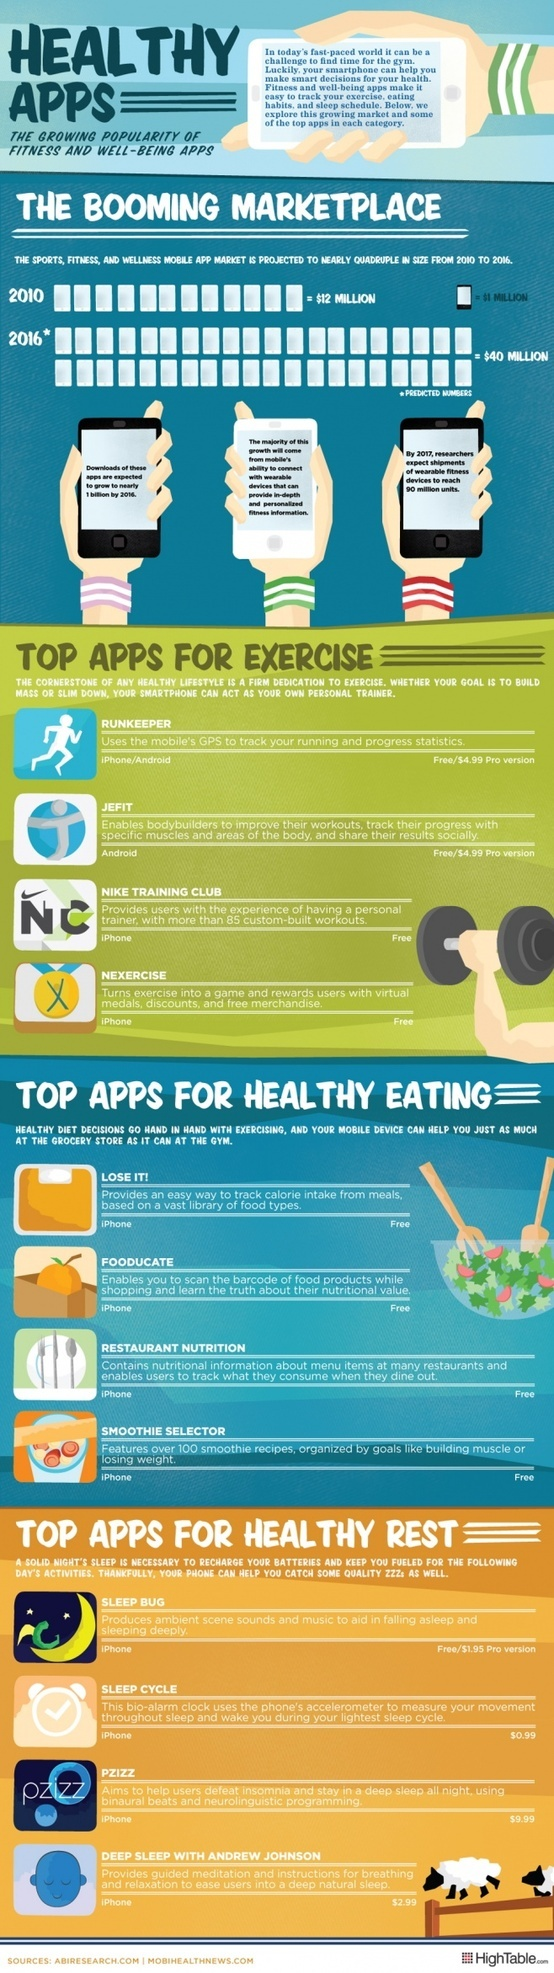 APPs sobre salud y Fitness. #infografia #infographic #software #health